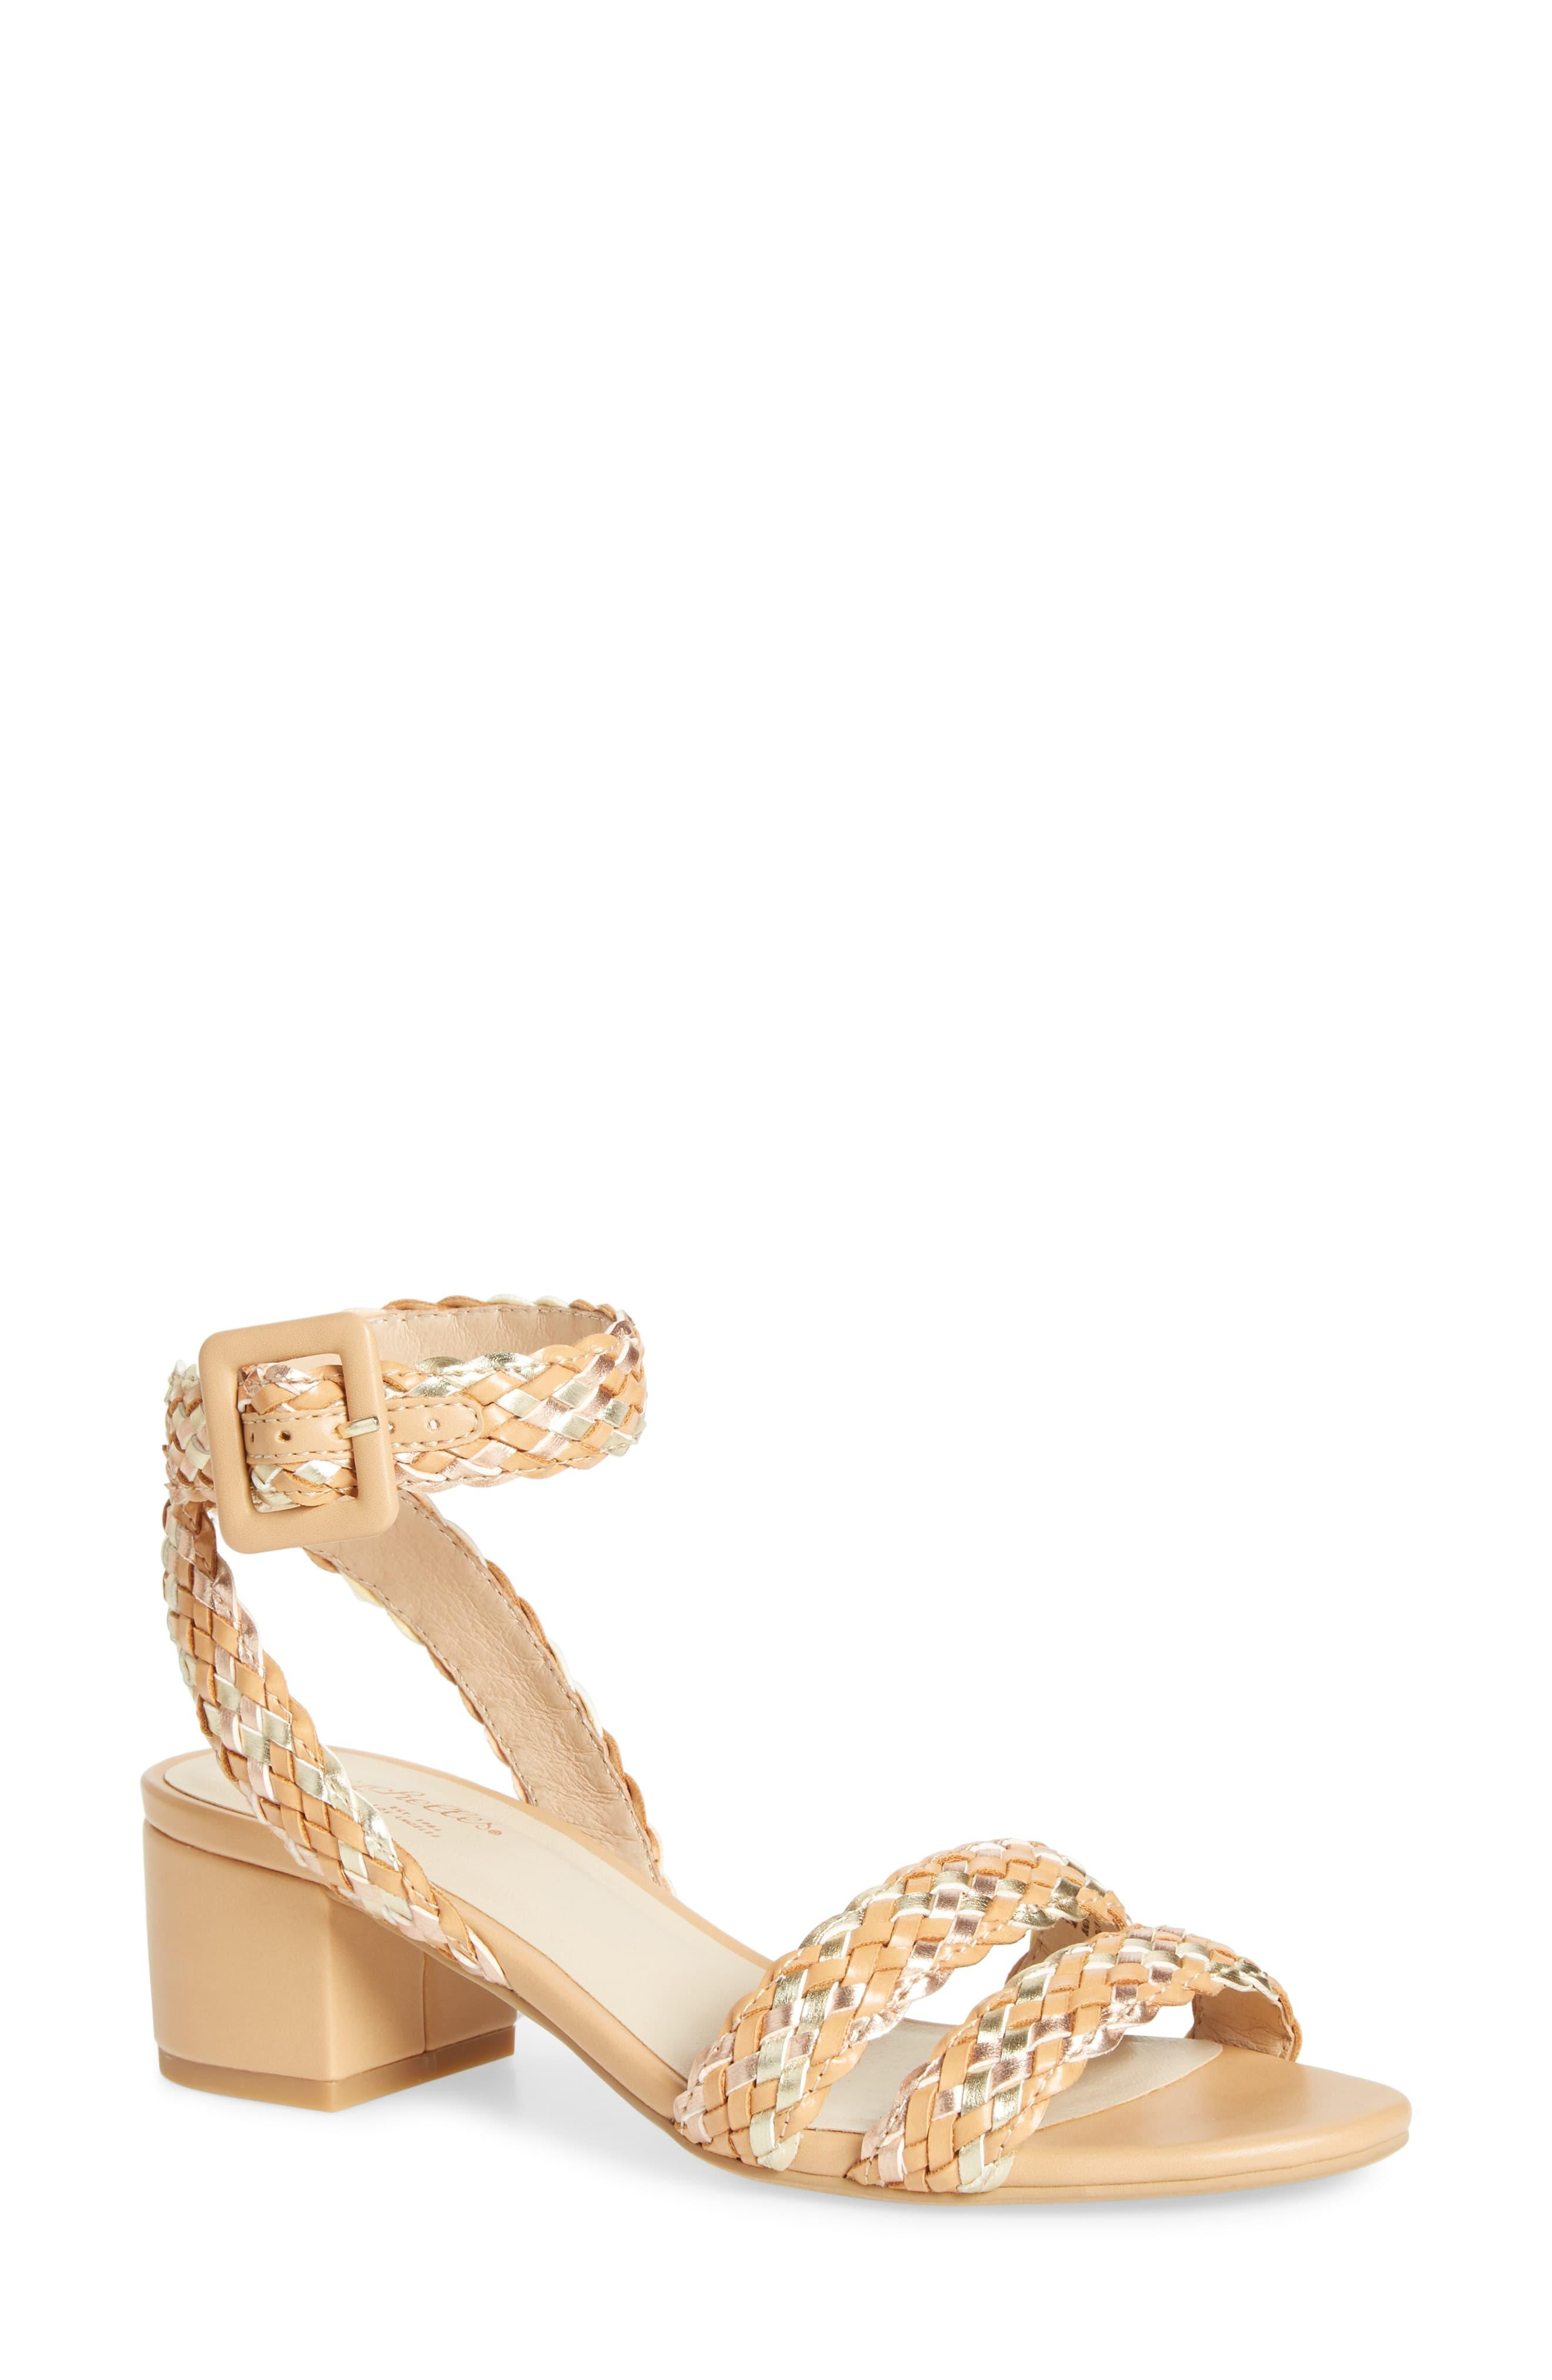 d4289907f Seychelles Braided Ankle Strap Sandal in Natural - Lyst